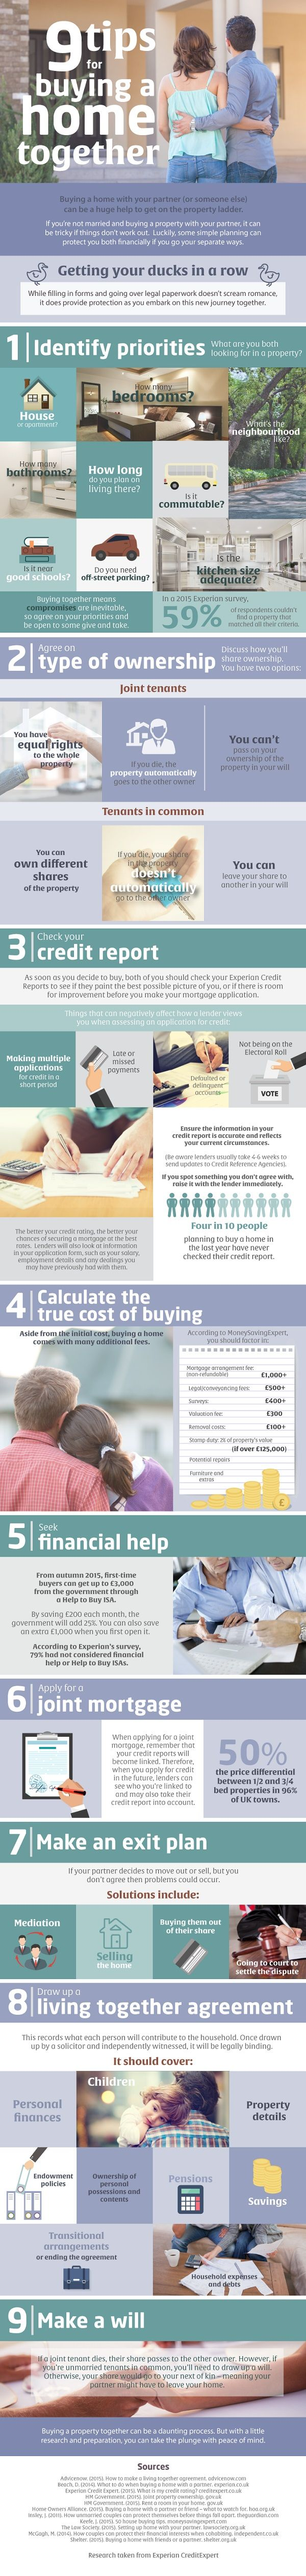 9 Tips For Buying A Home Together #infographic